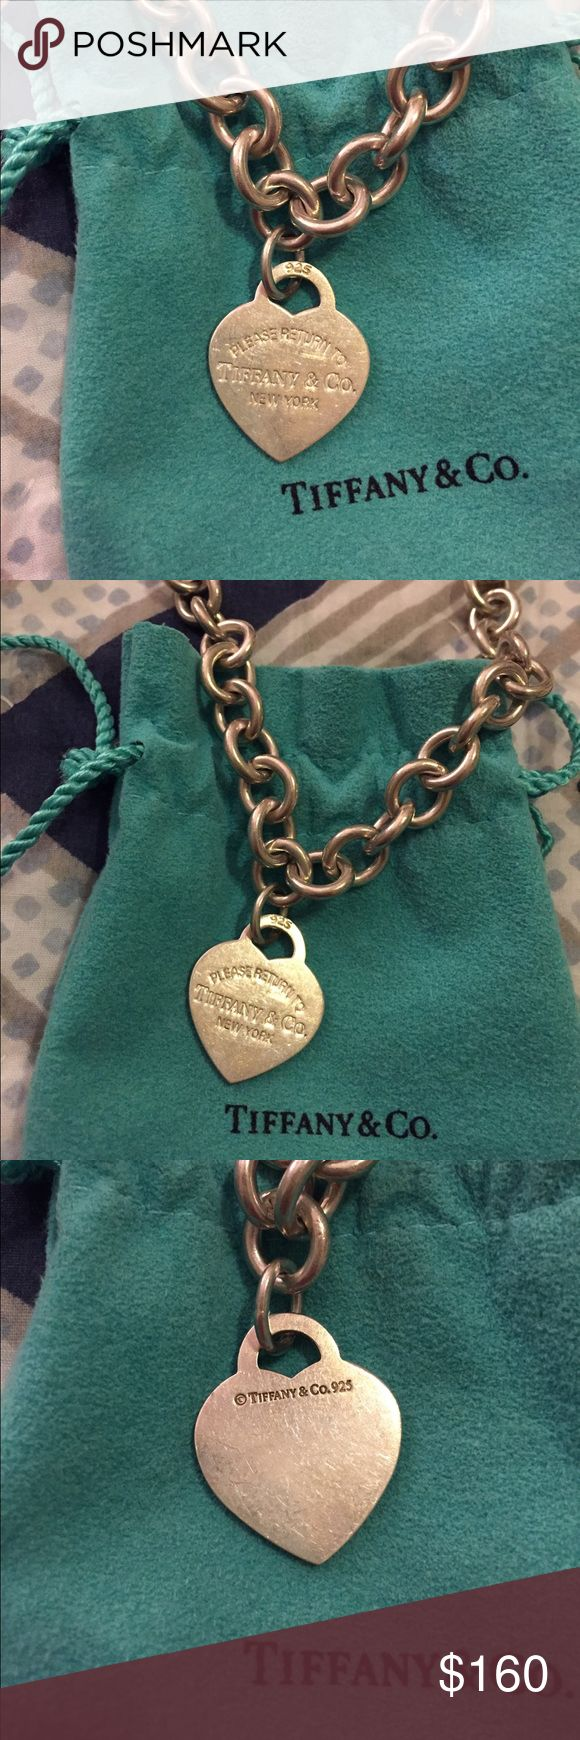 "Classic Tiffany & Co. Silver Necklace Part of the ""Return to Tiffany"" collection. Beautiful genuine Tiffany necklace!! Slightly worn and minor scratches but still beautiful and classic. Very timeless. Comes with original pouch. Tiffany & Co. Jewelry Necklaces"